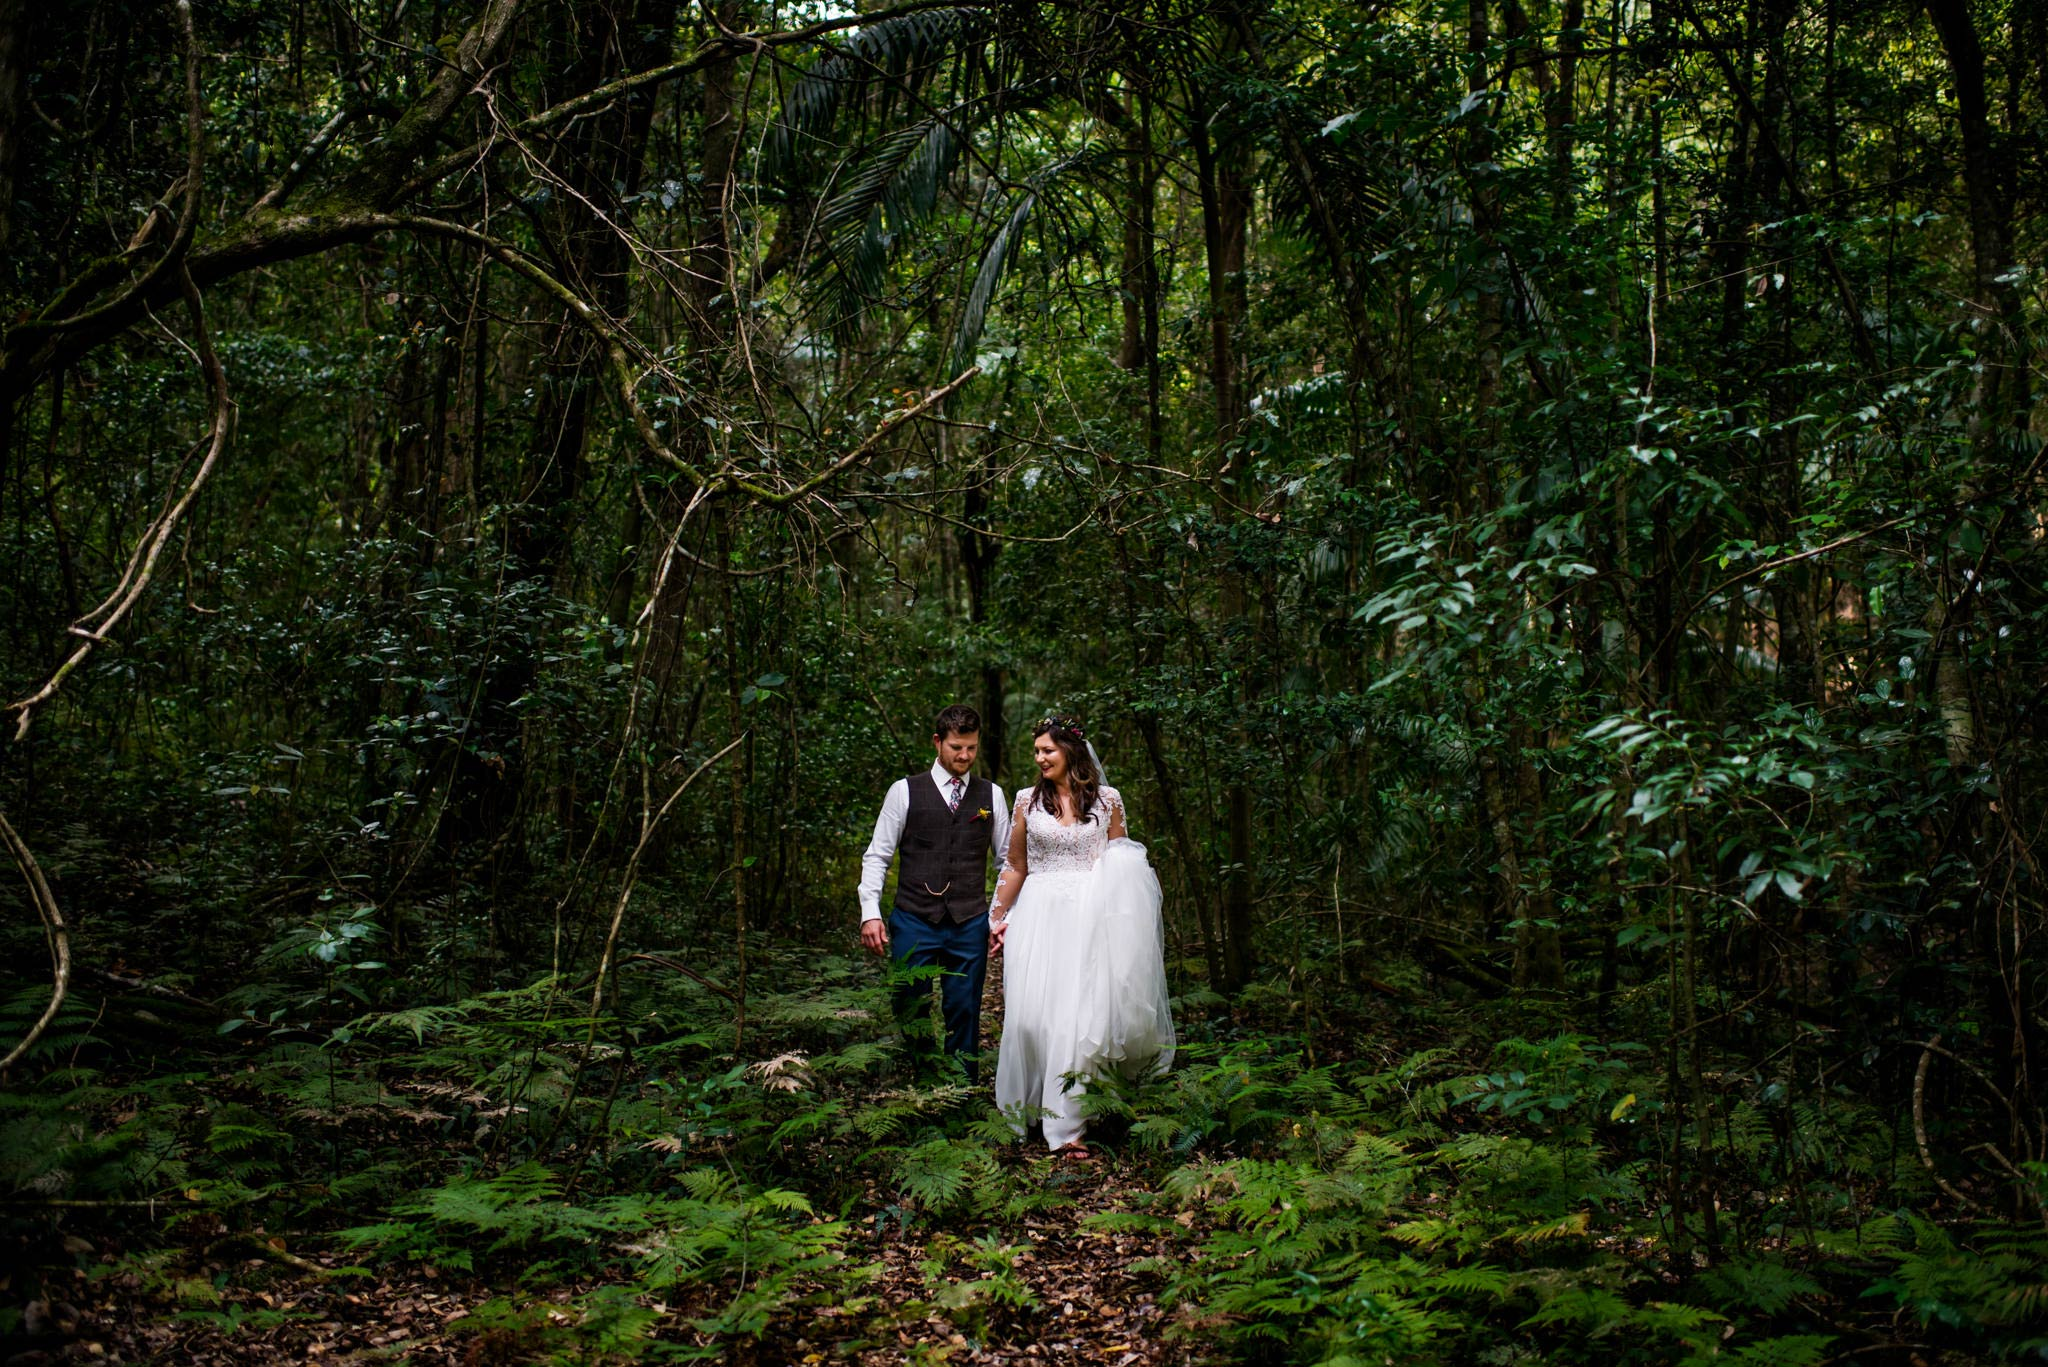 Bride and groom walk through rainforest at country wedding NSW